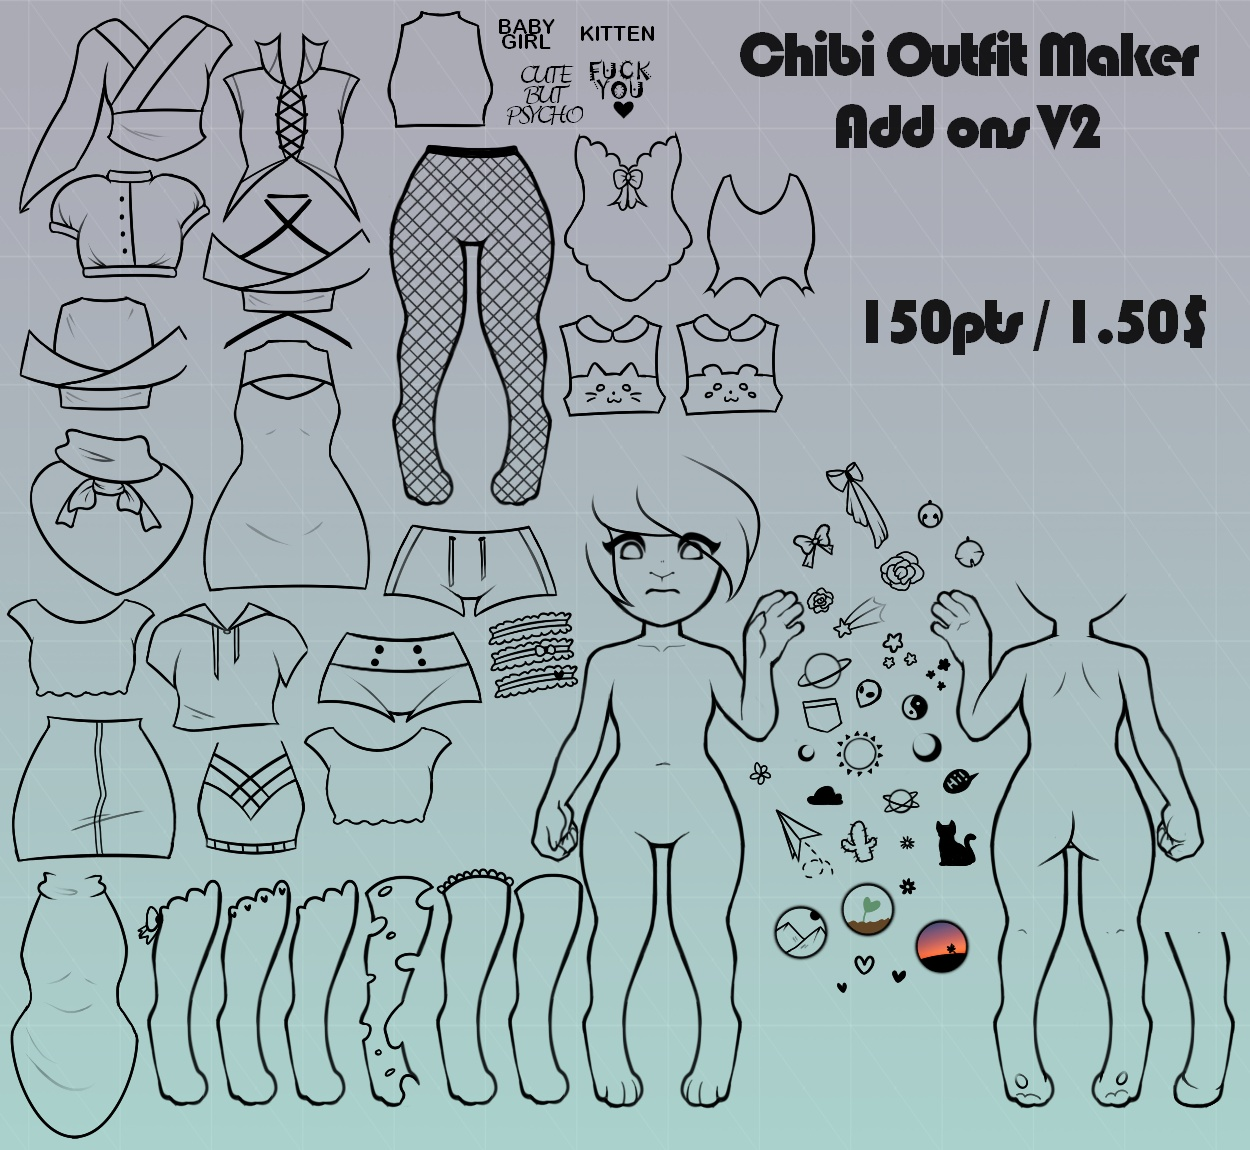 Chibi Outfit Maker 2 Add Ons V2